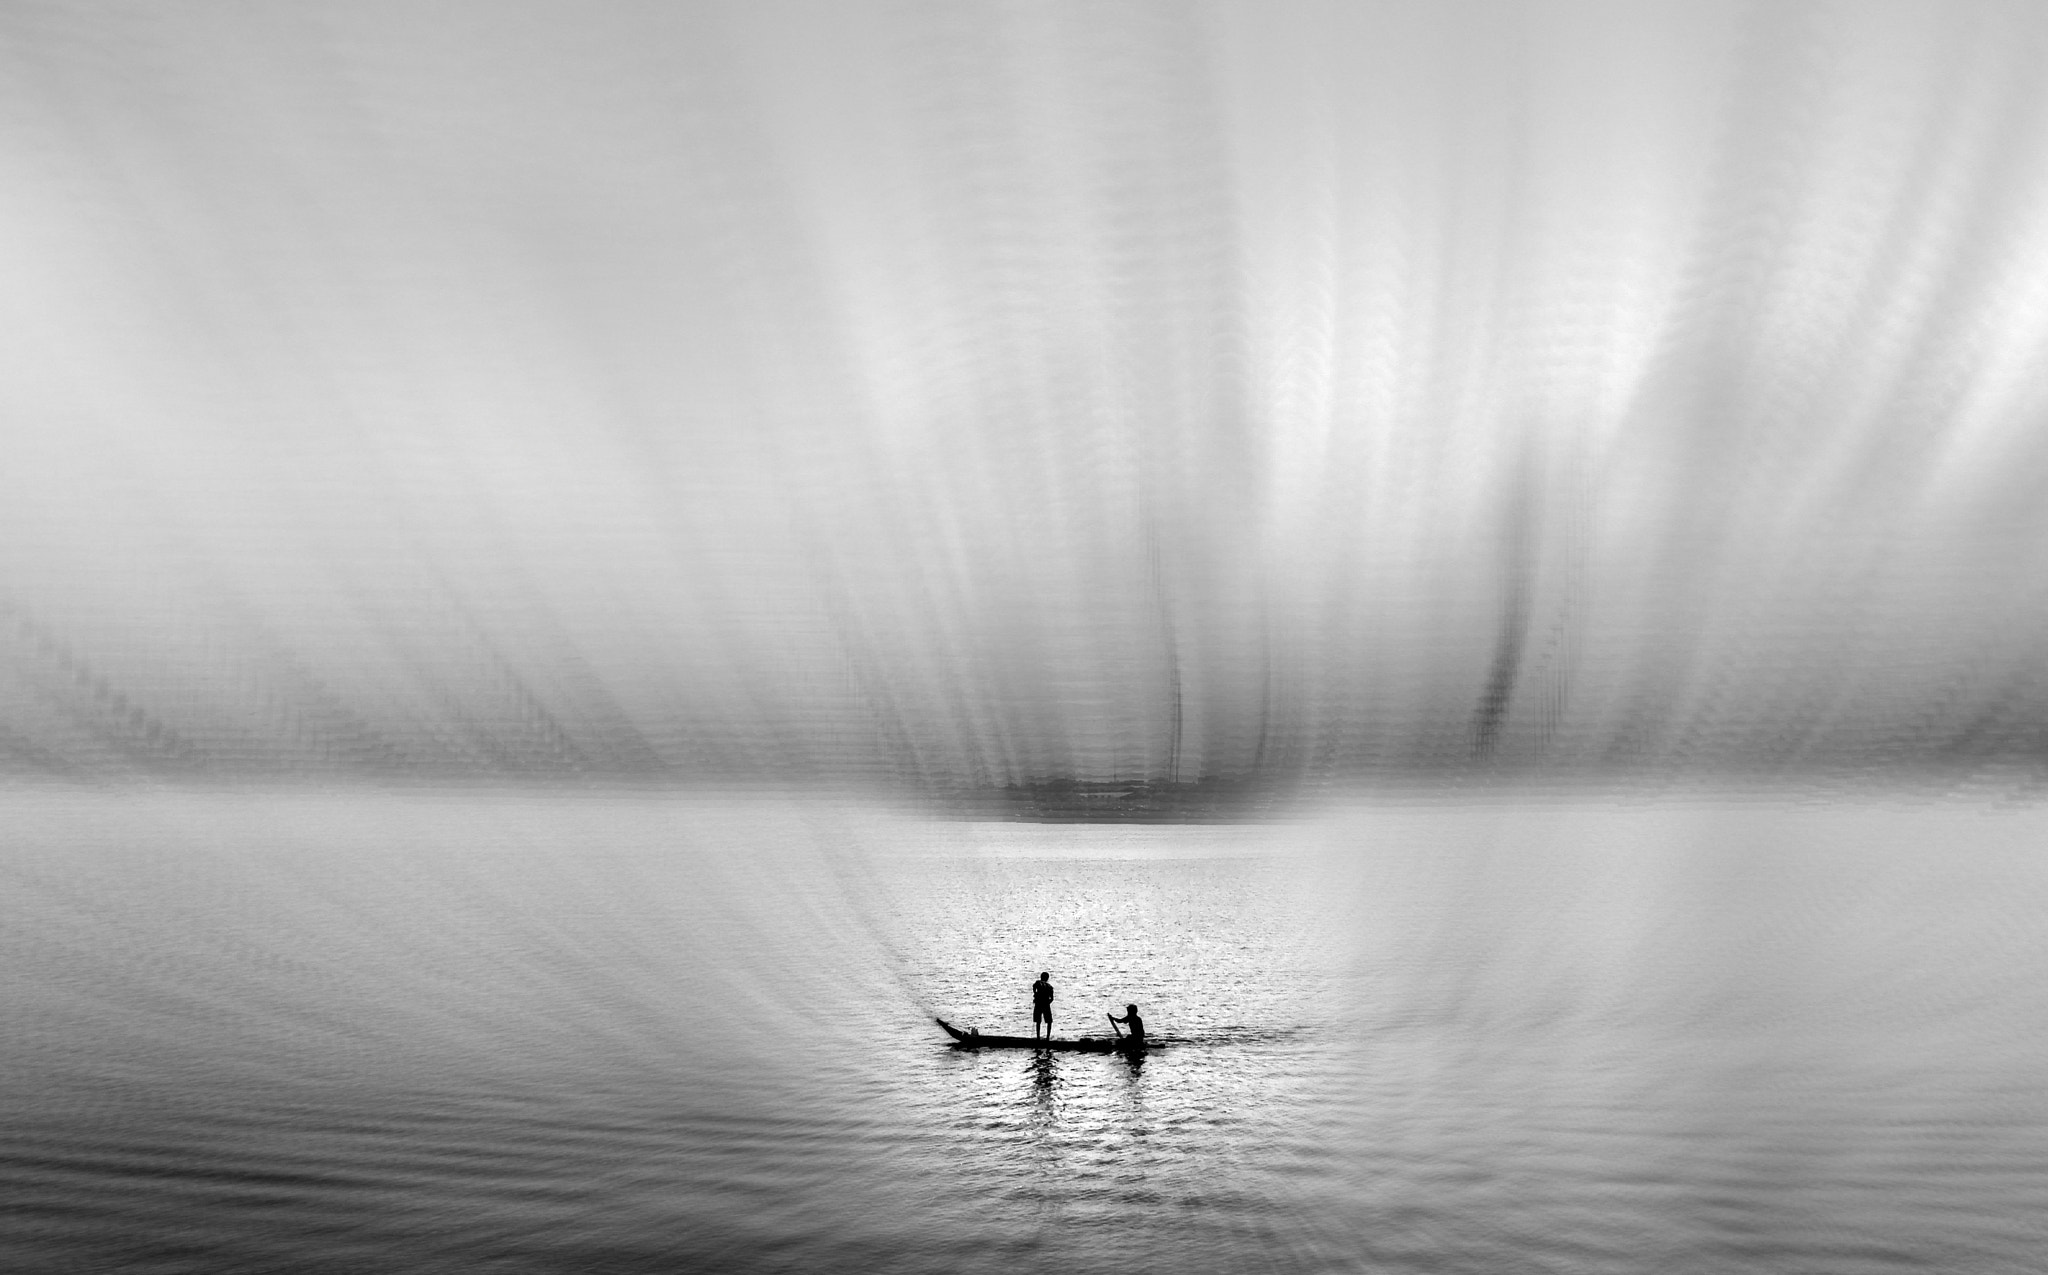 Photograph Fisherman's Dream by Premkumar Antony on 500px